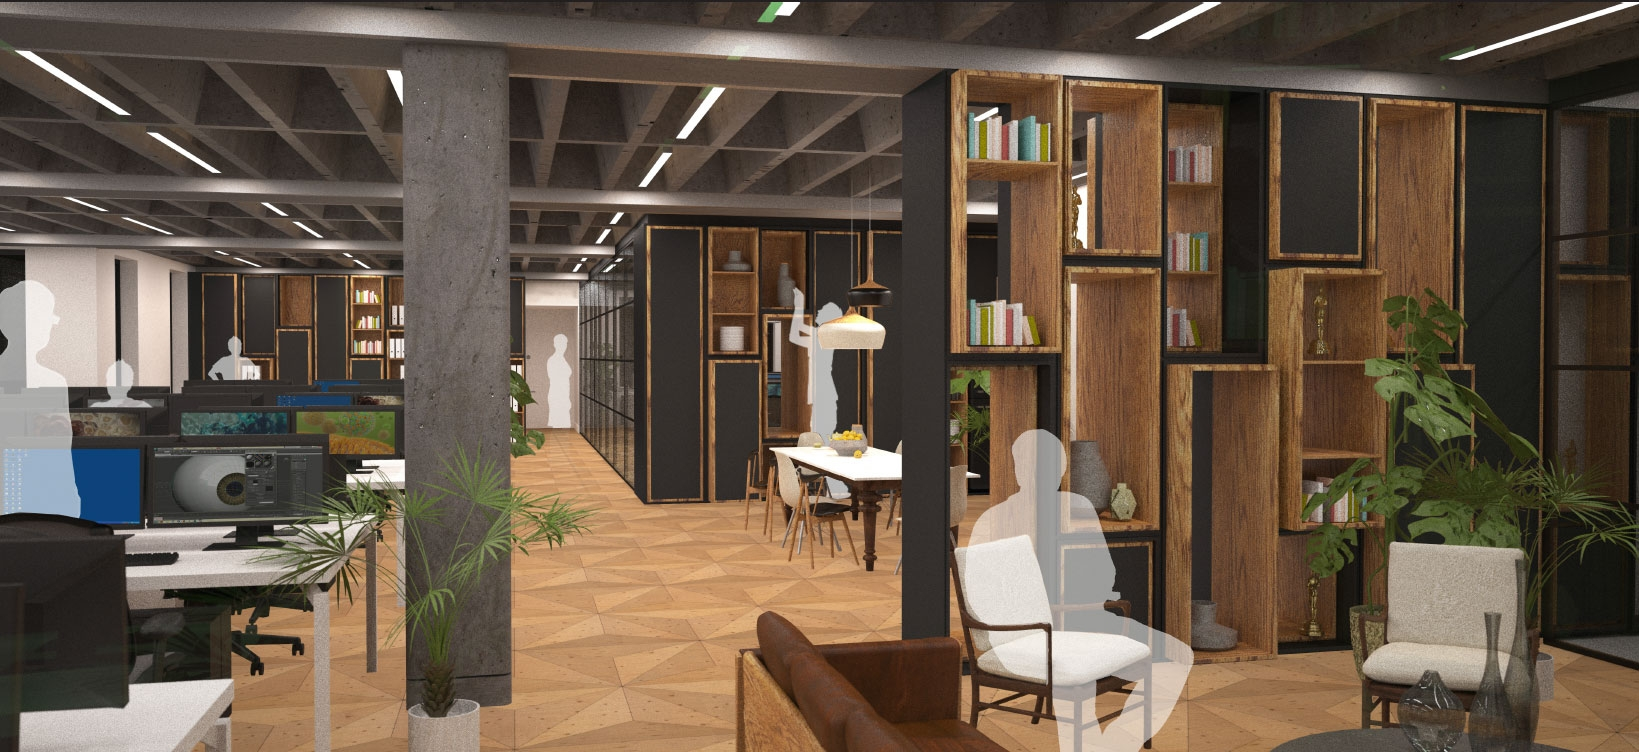 Architectural rendering of Random42's new offices (Photo: Business Wire)